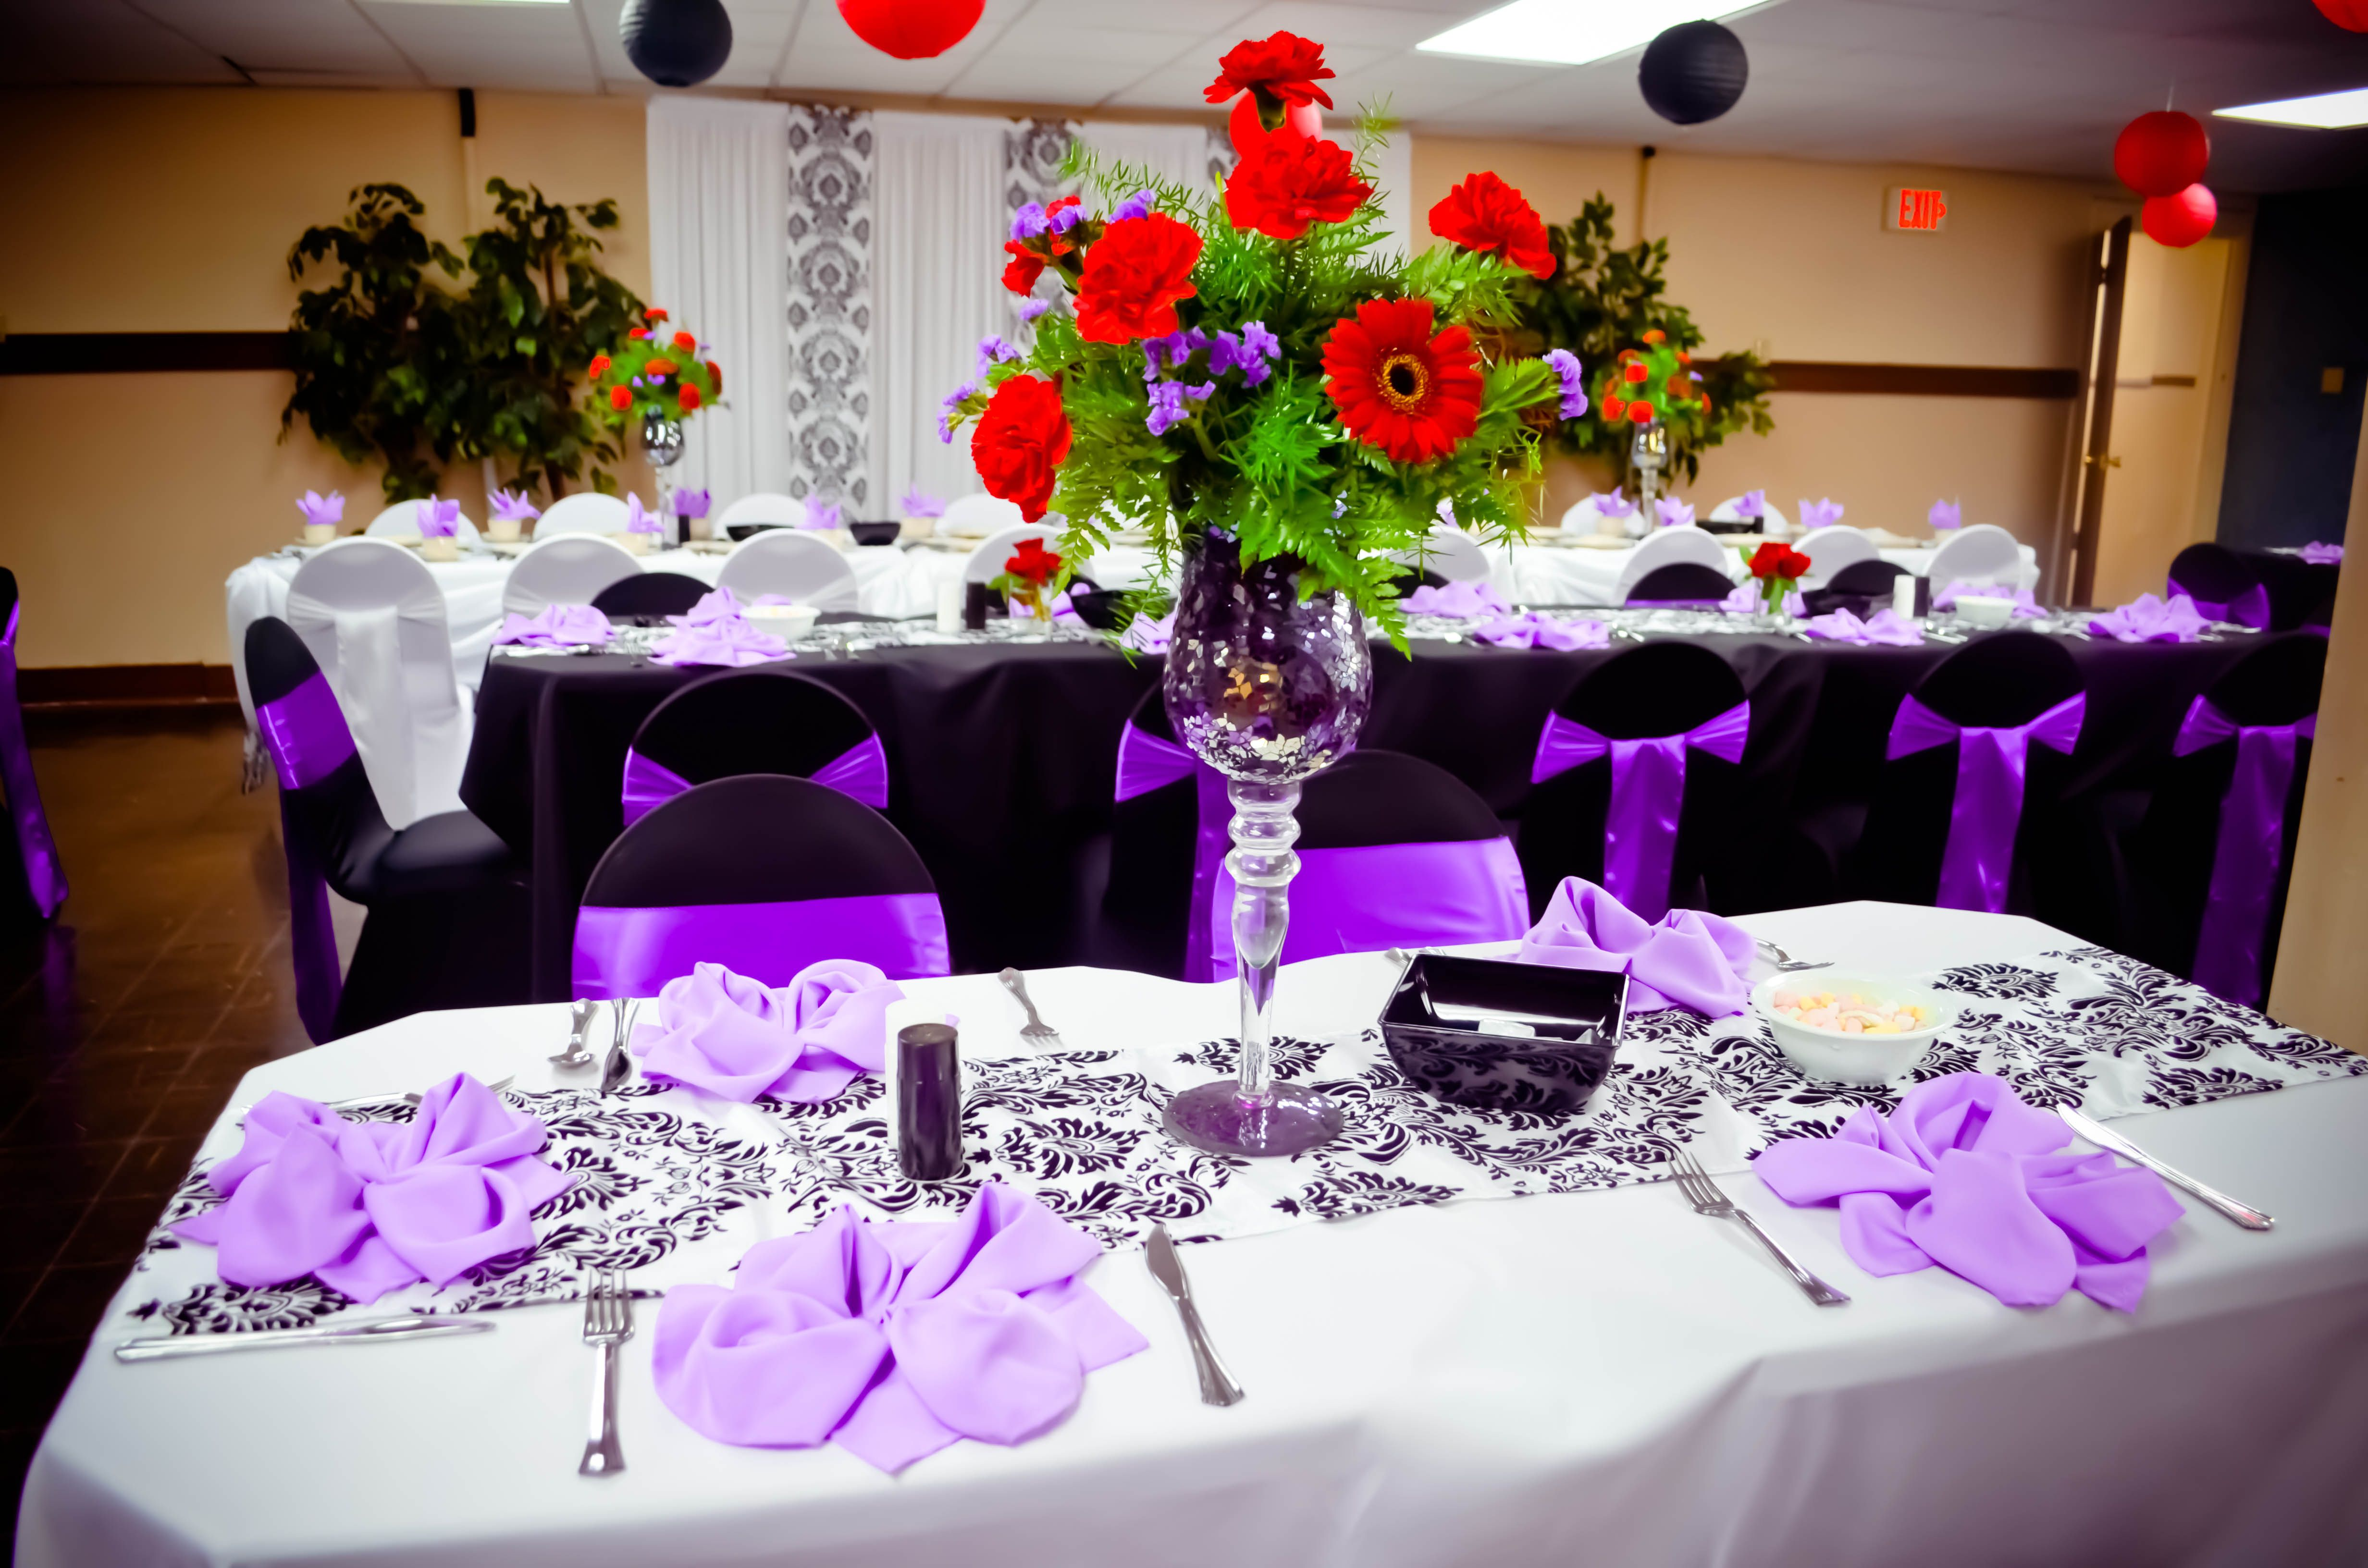 purple chair sashes for weddings fluffy bean bag chairs event black and white spandex covers satin